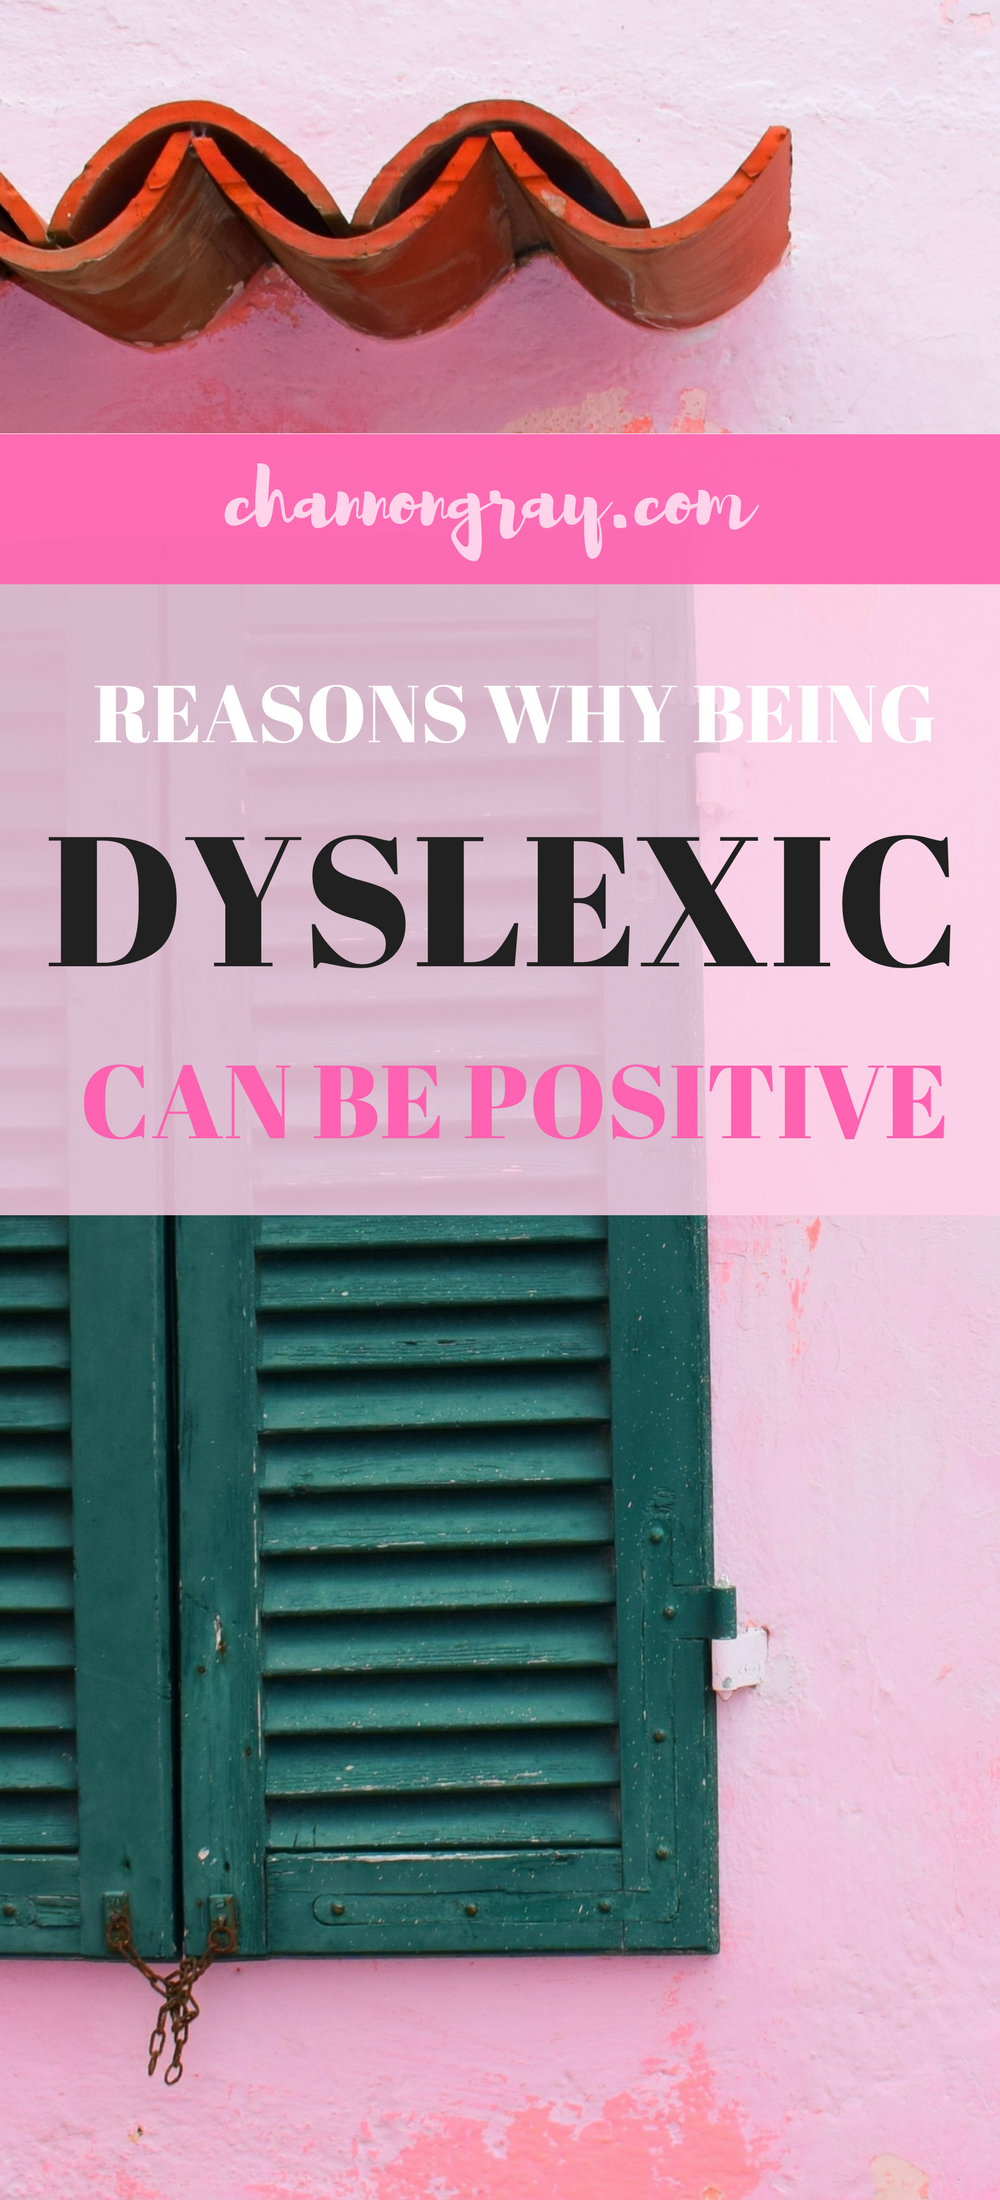 Dyslexia does not need to be a negative diagnosis for children, students or adults, but instead a positive for those at school, college, university or in the workplace. It makes you unique, creative and open minded. Celebrate your strengths. For your own mental health, being positive about learning difficulties is crucial // heythereChannon